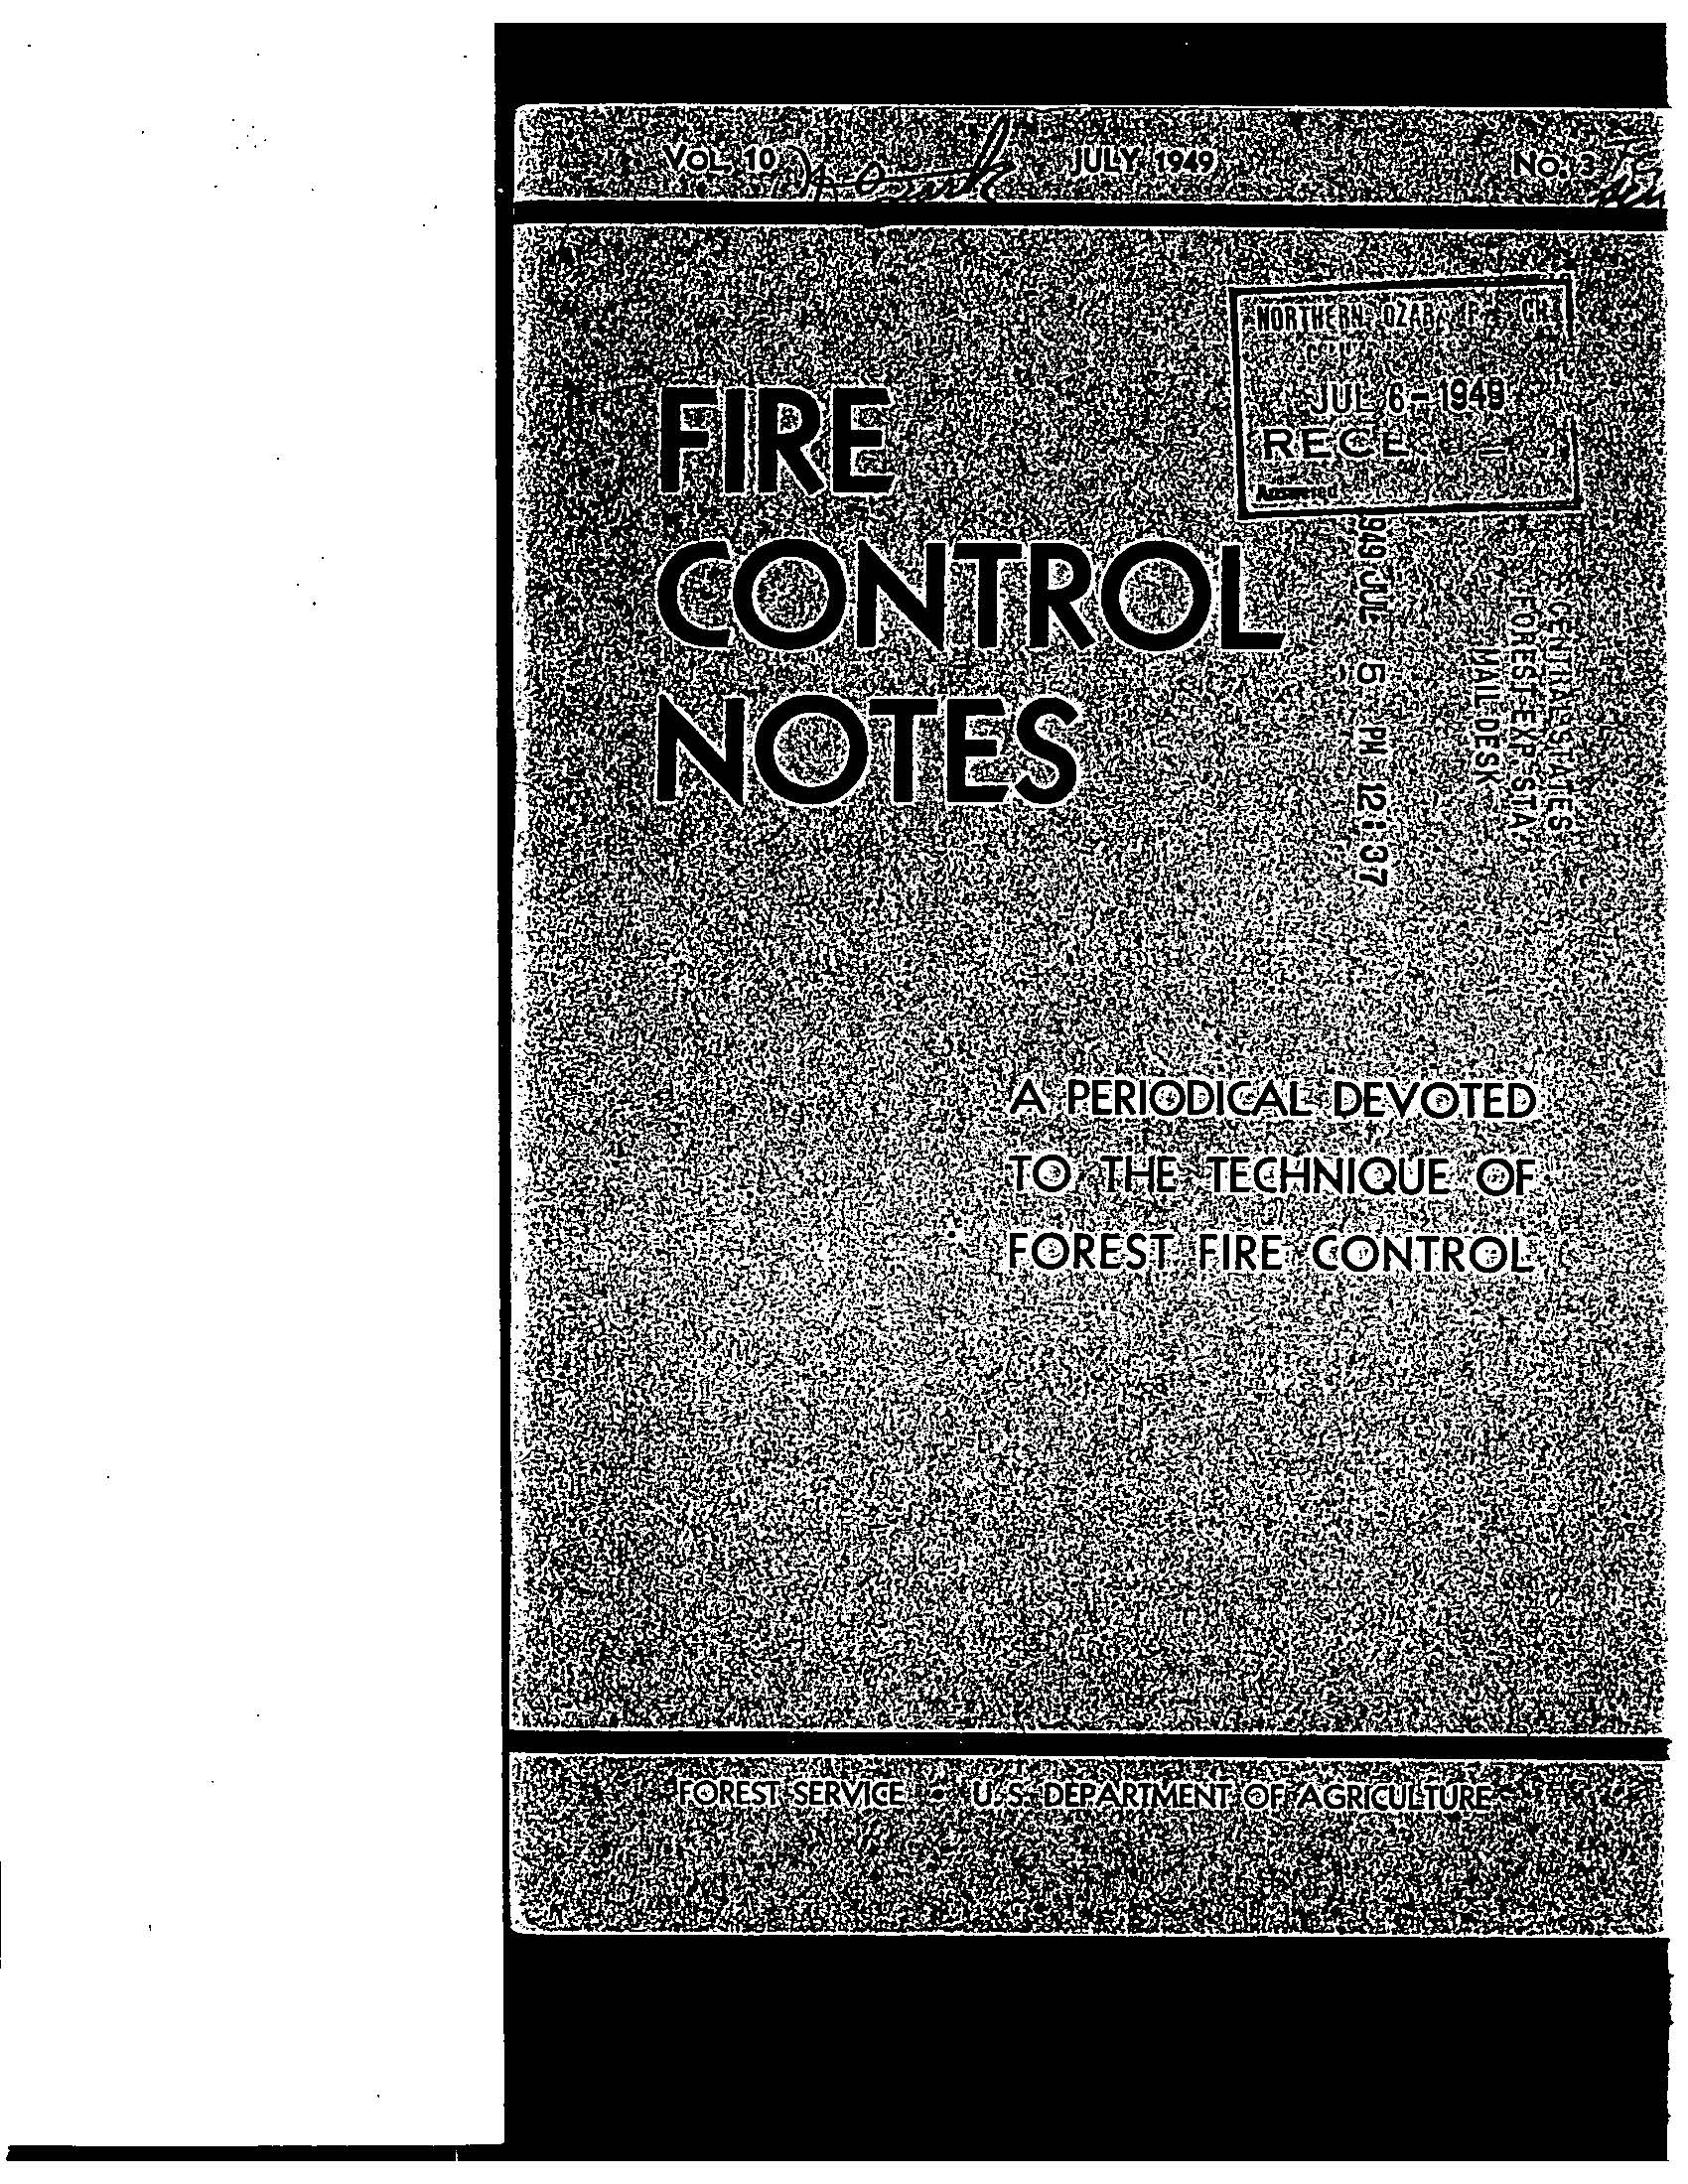 Cover of Fire Management Today Volume 10, Issue 03